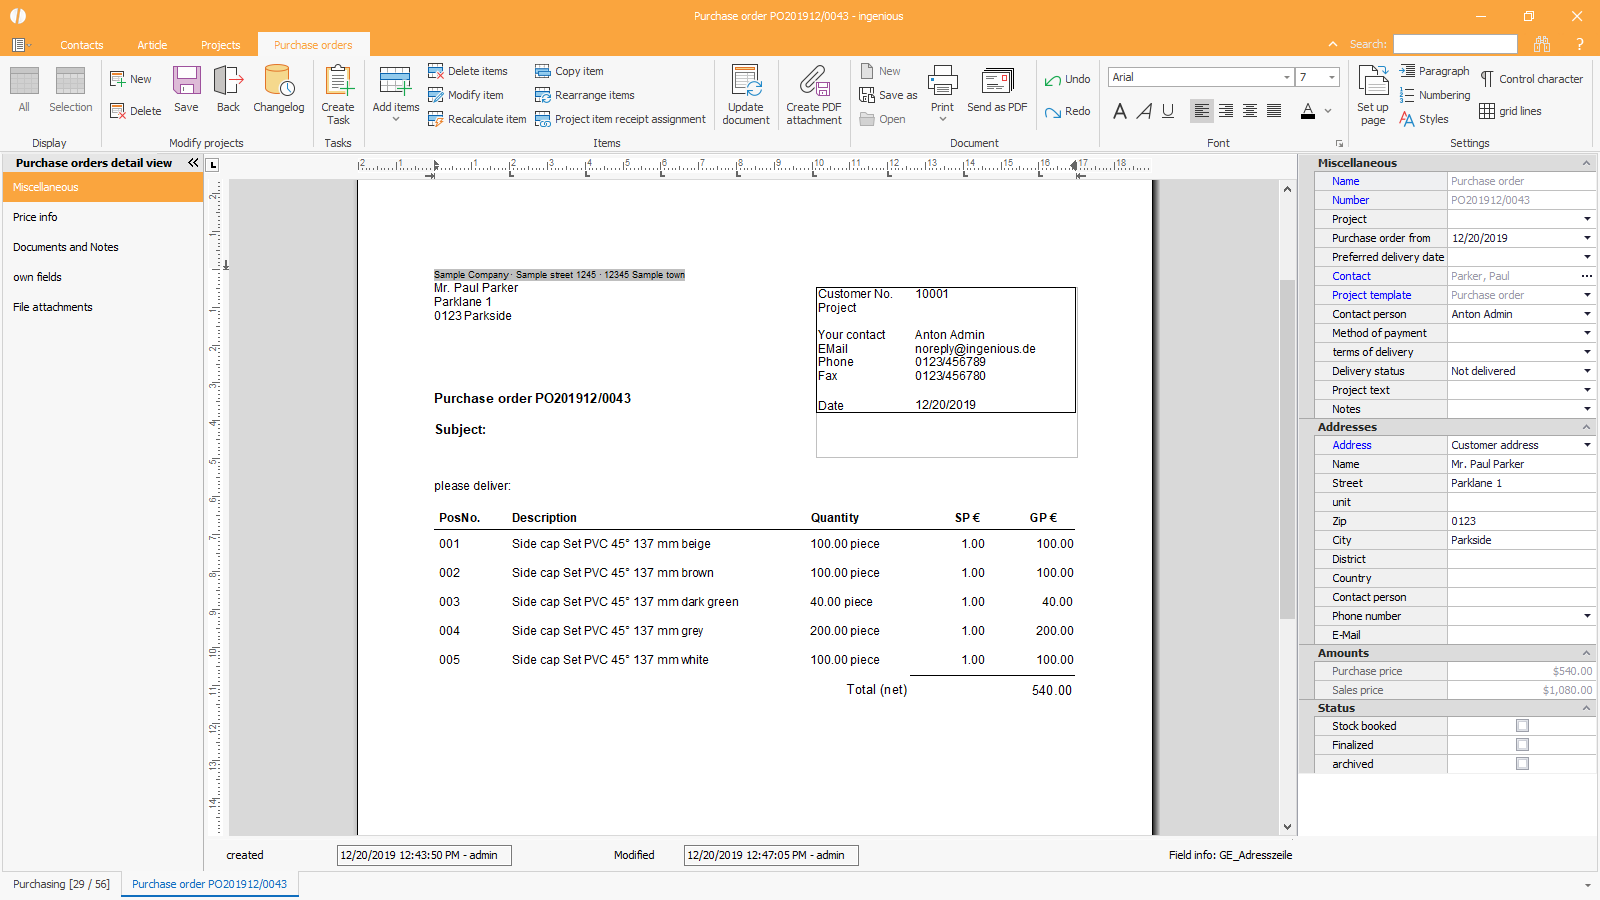 ingenious software purchase order detailview